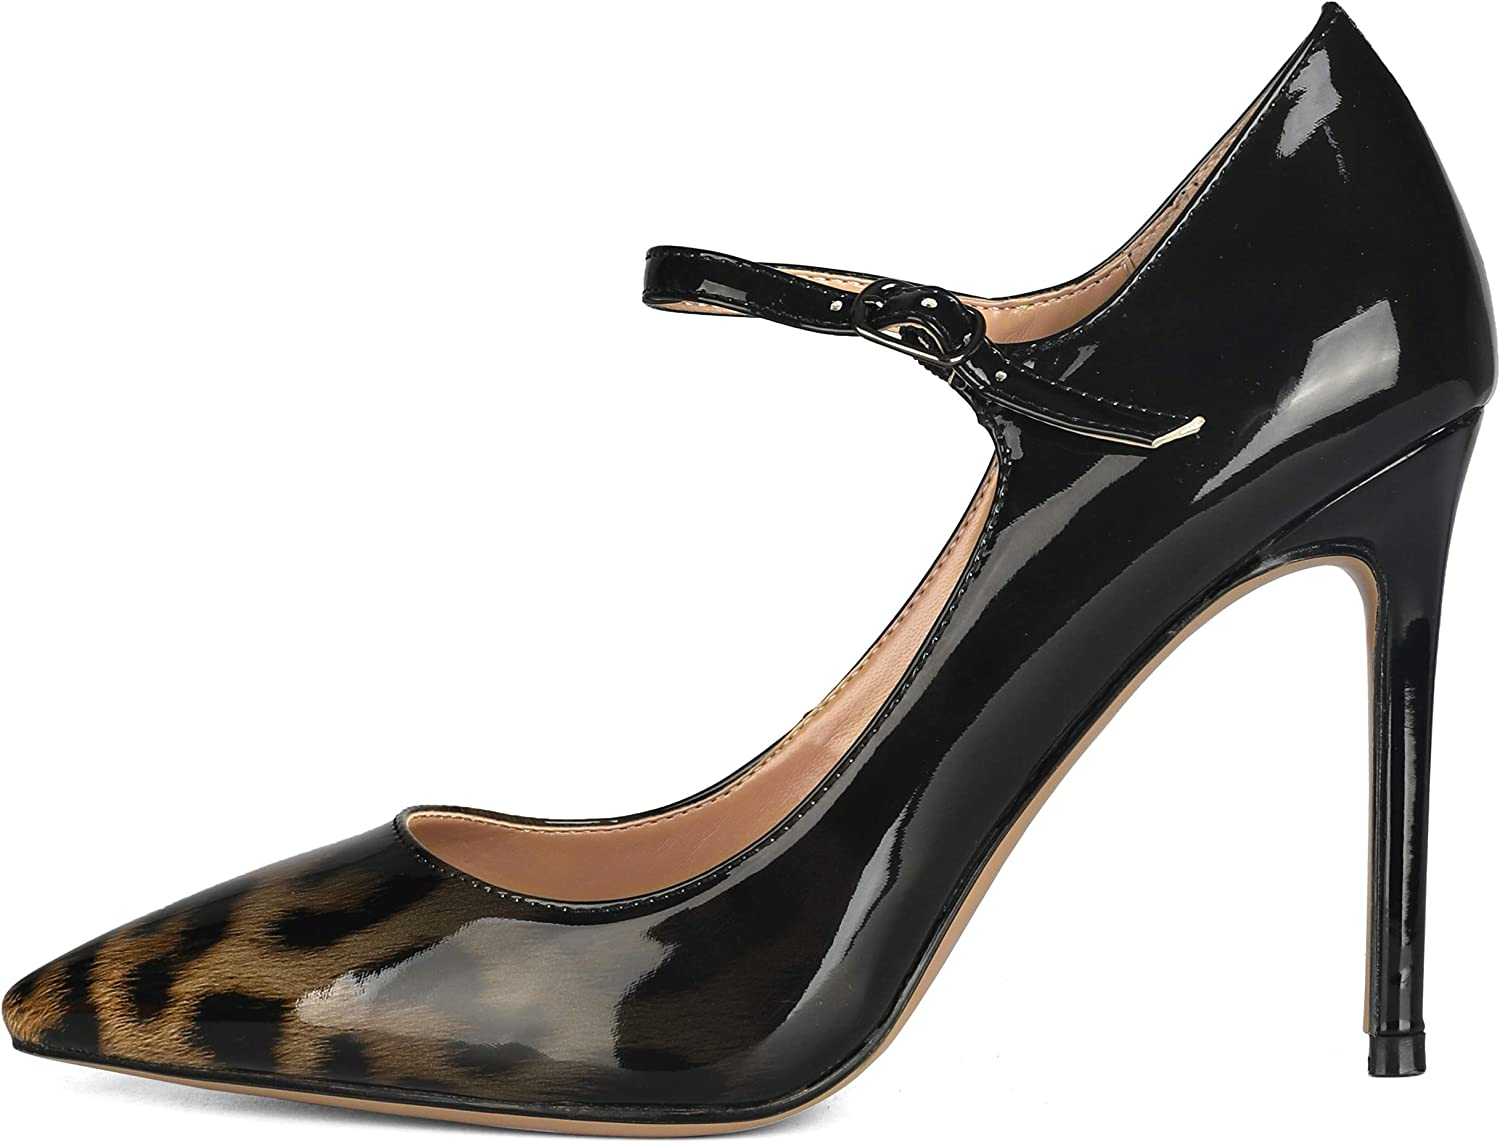 Long-awaited SOPHITINA Women's Pointy Toe Patent Green Leopard Pumps Max 40% OFF Leather